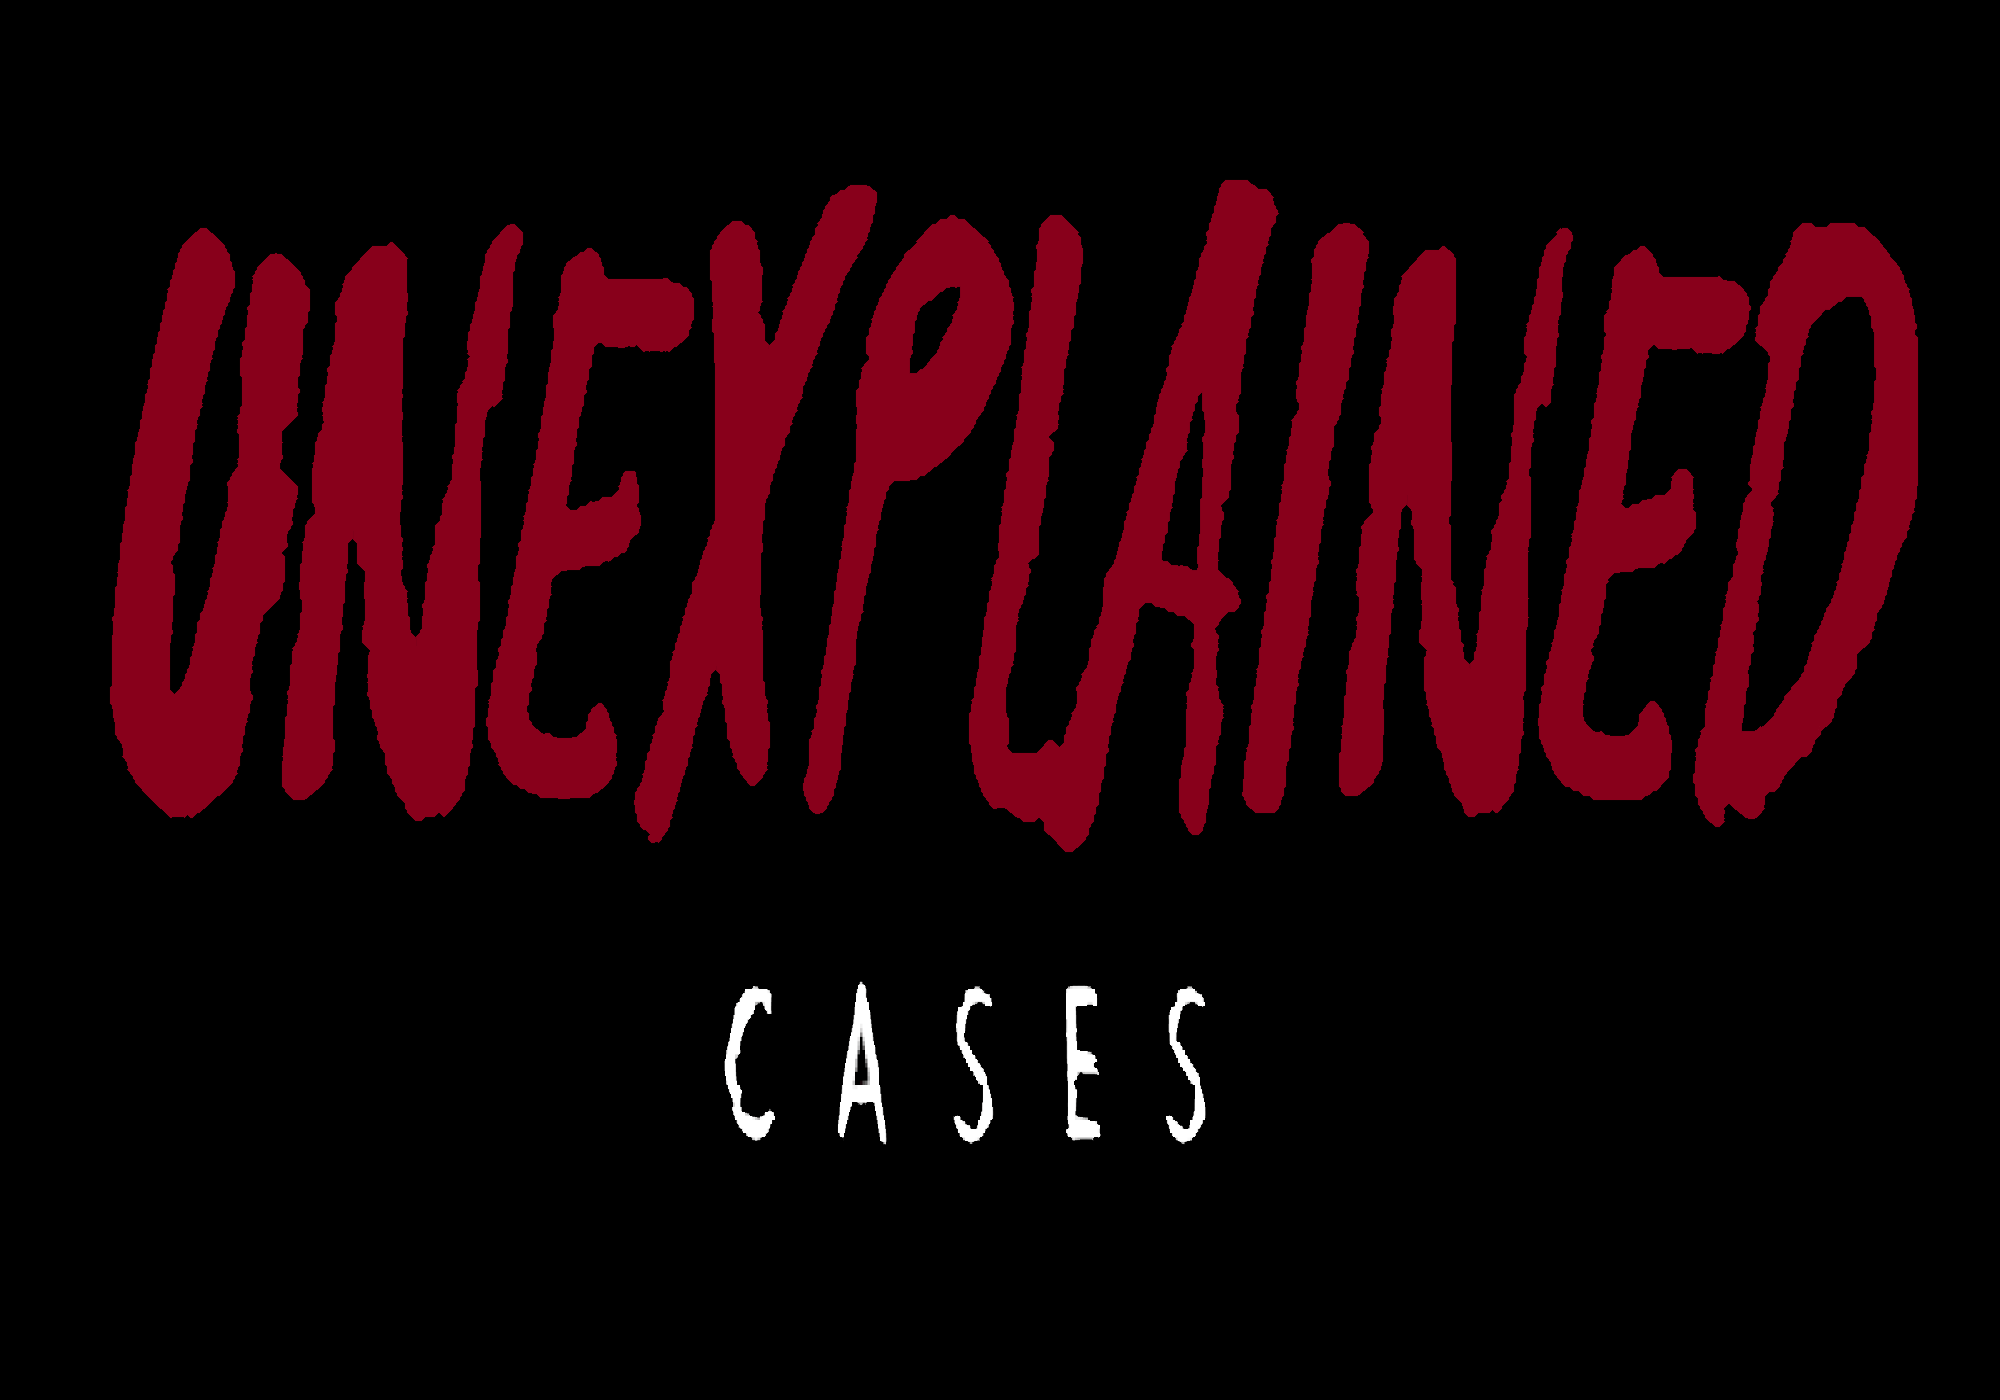 Artwork for (VIDEO) Unexplained Cases Episode 2: SPOOKY LIBRARY (one of the most haunted in America)!